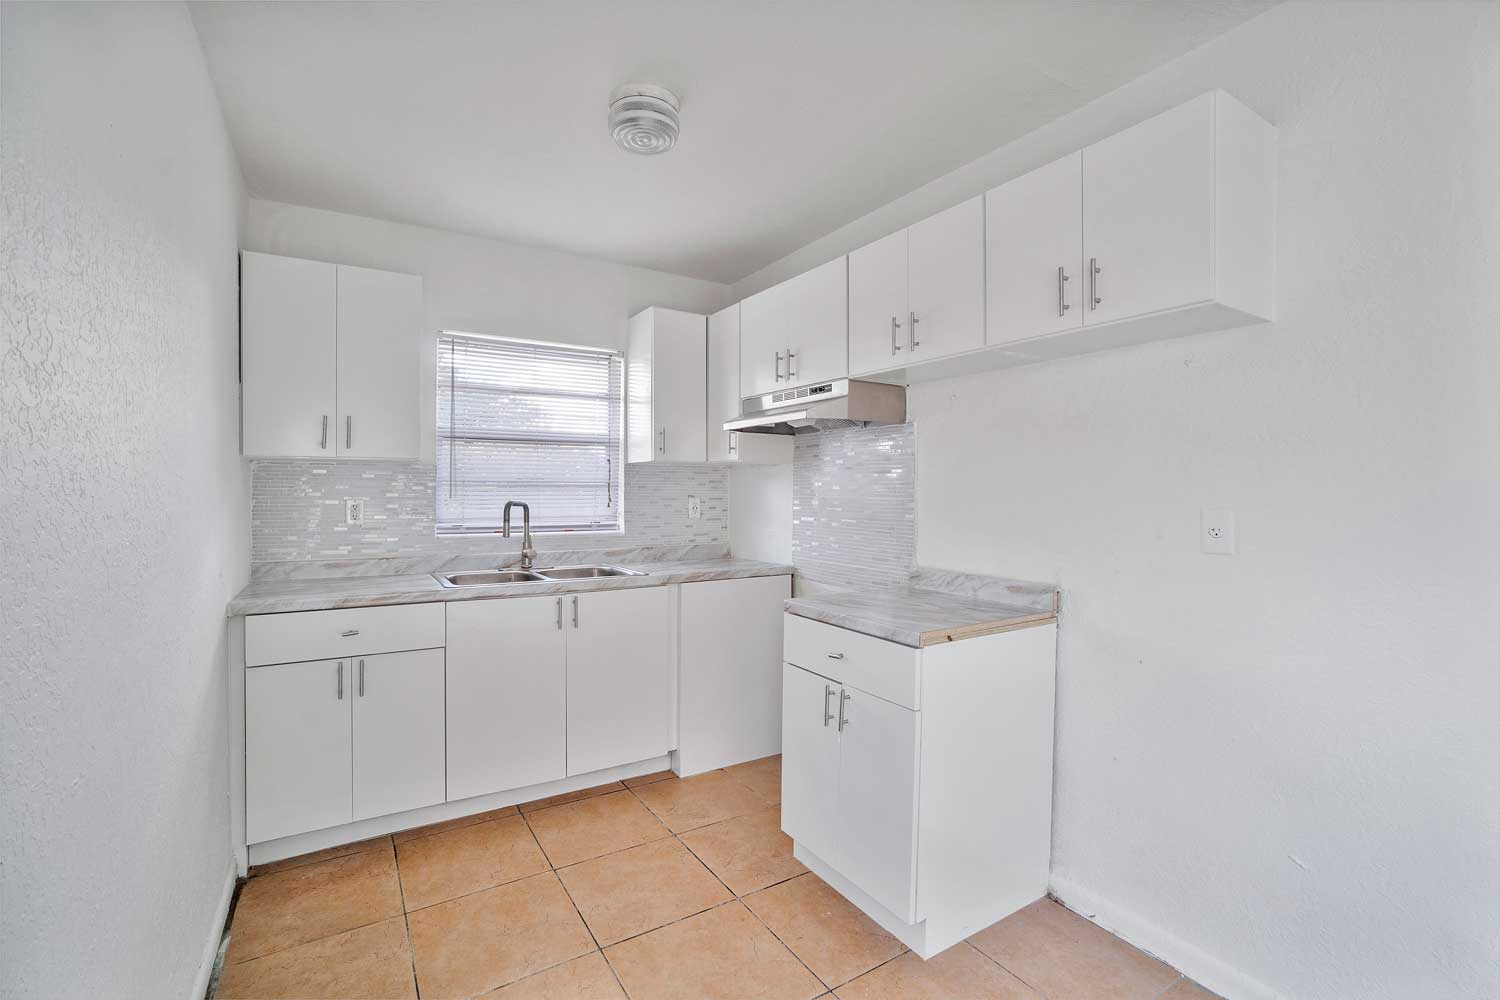 Kitchen at New Castle Lake Apartments in Miami, FL